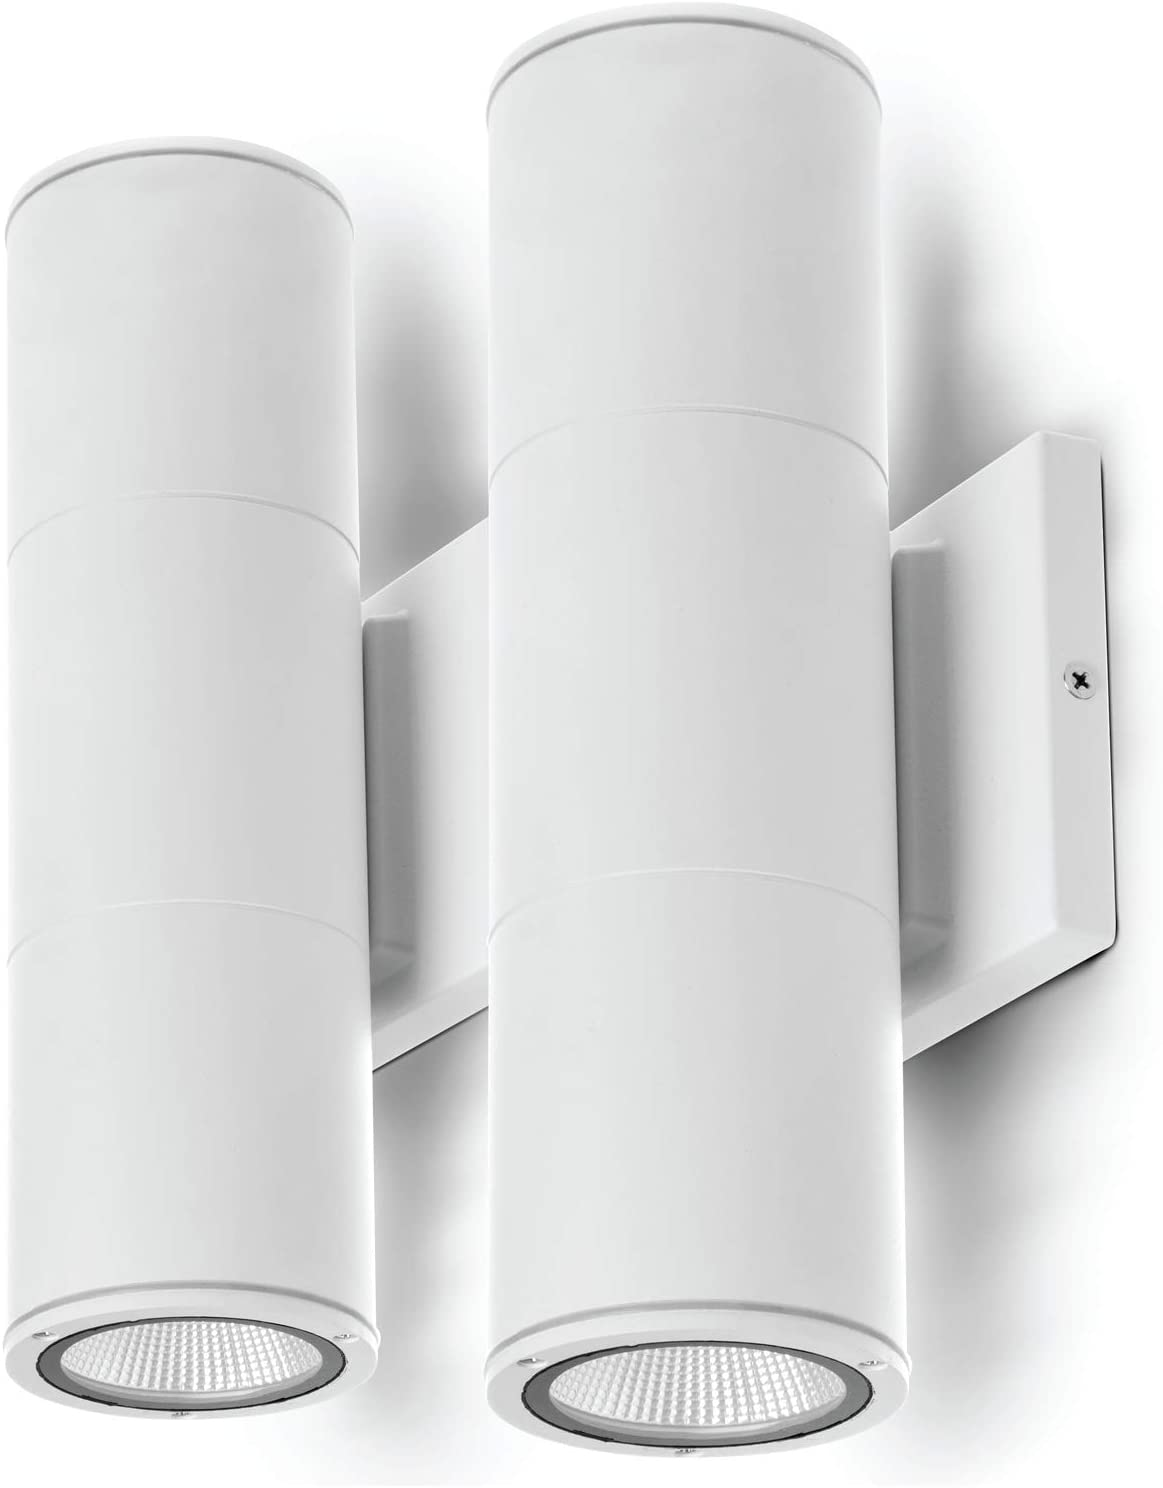 Home Zone Security LED Modern Wall & Porch Sconce Light (2-Set, White)